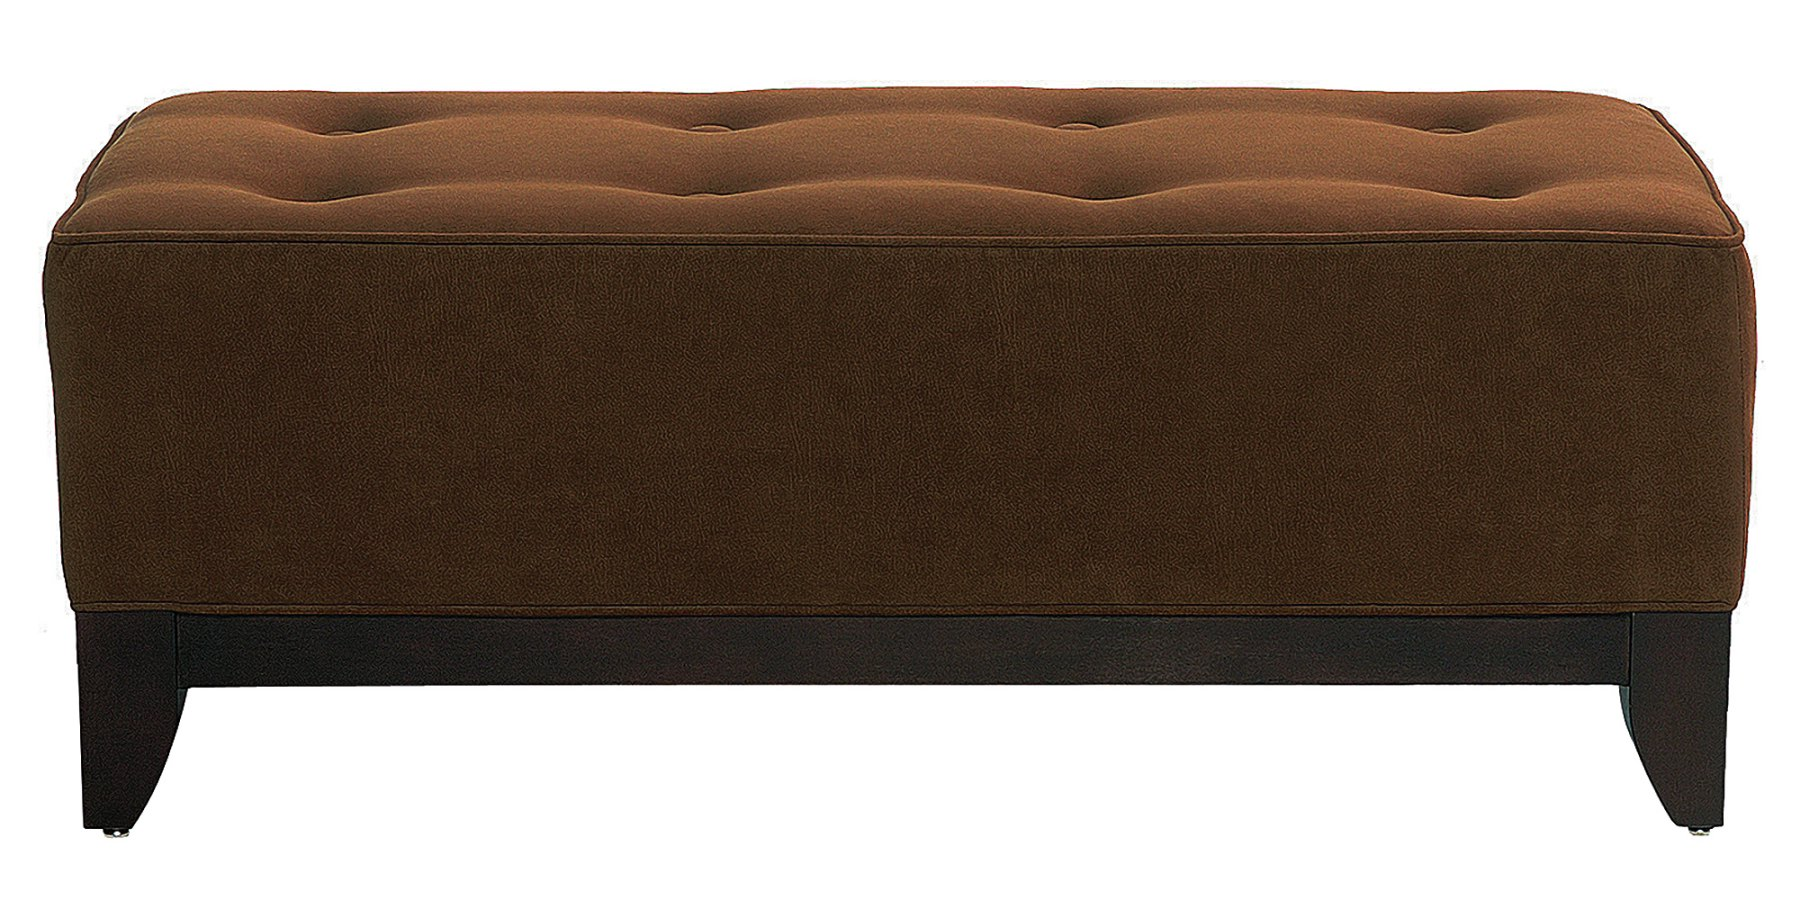 Fabric Upholstered Coffee Table Ottoman